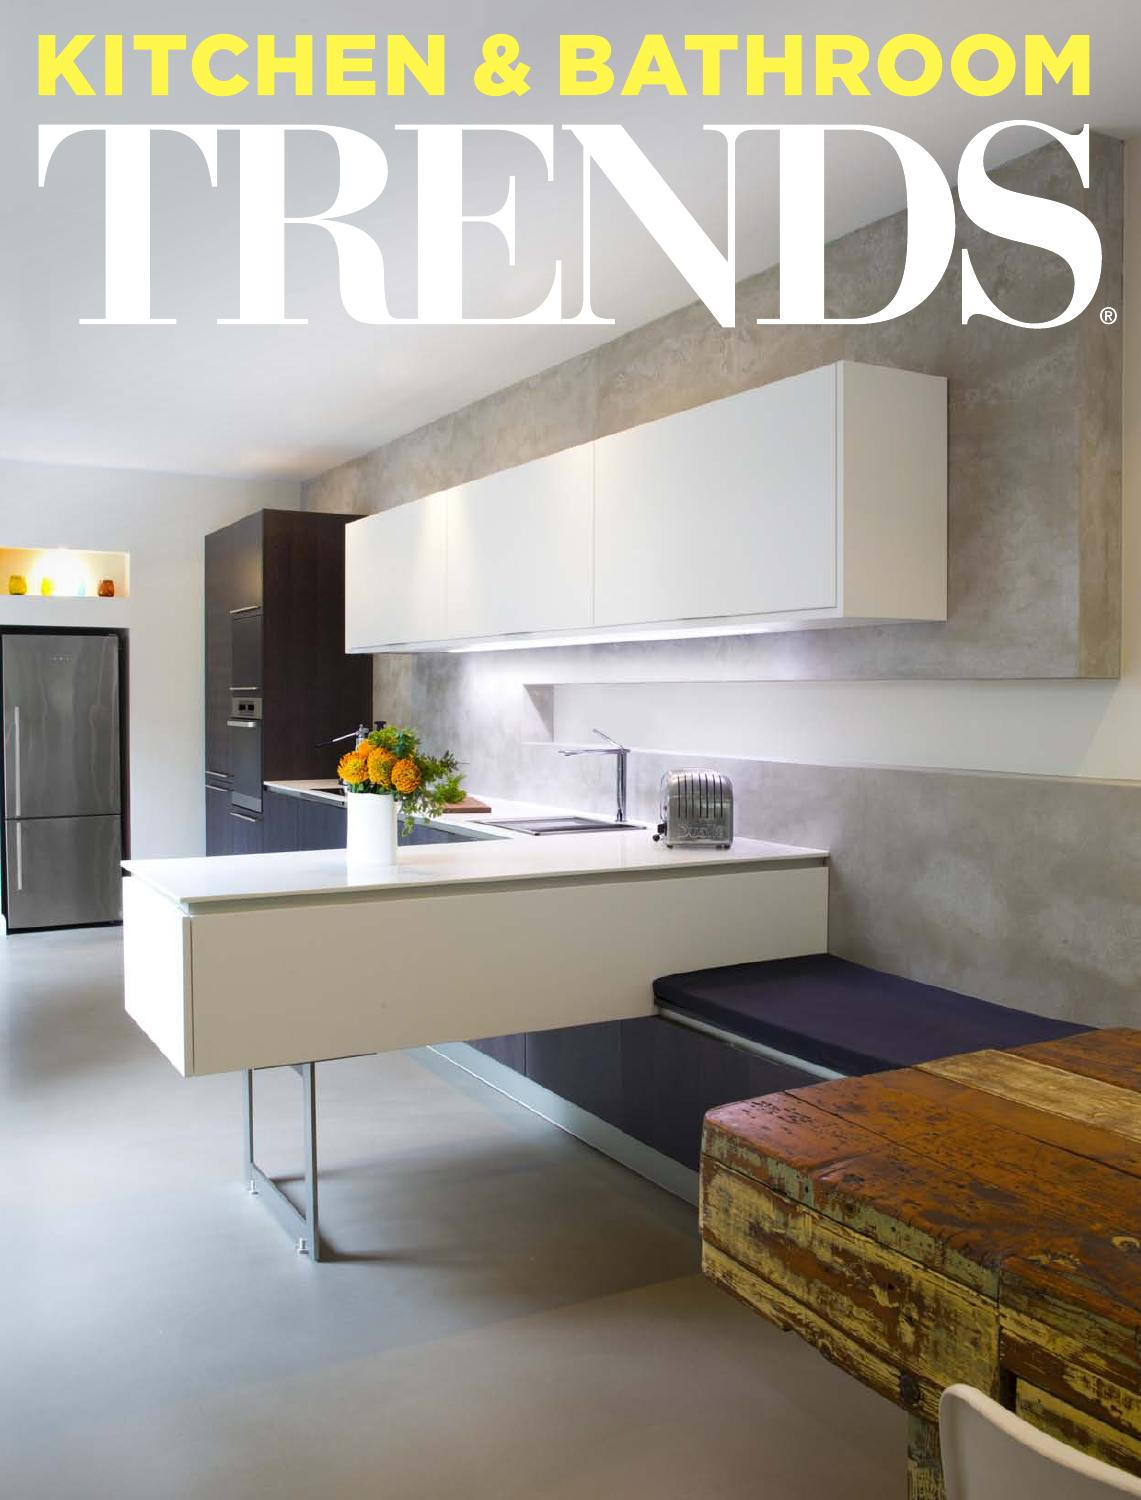 KITCHEN & BATHROOM TRENDS Australia Vol 30/02 by trendsideas.com - issuu